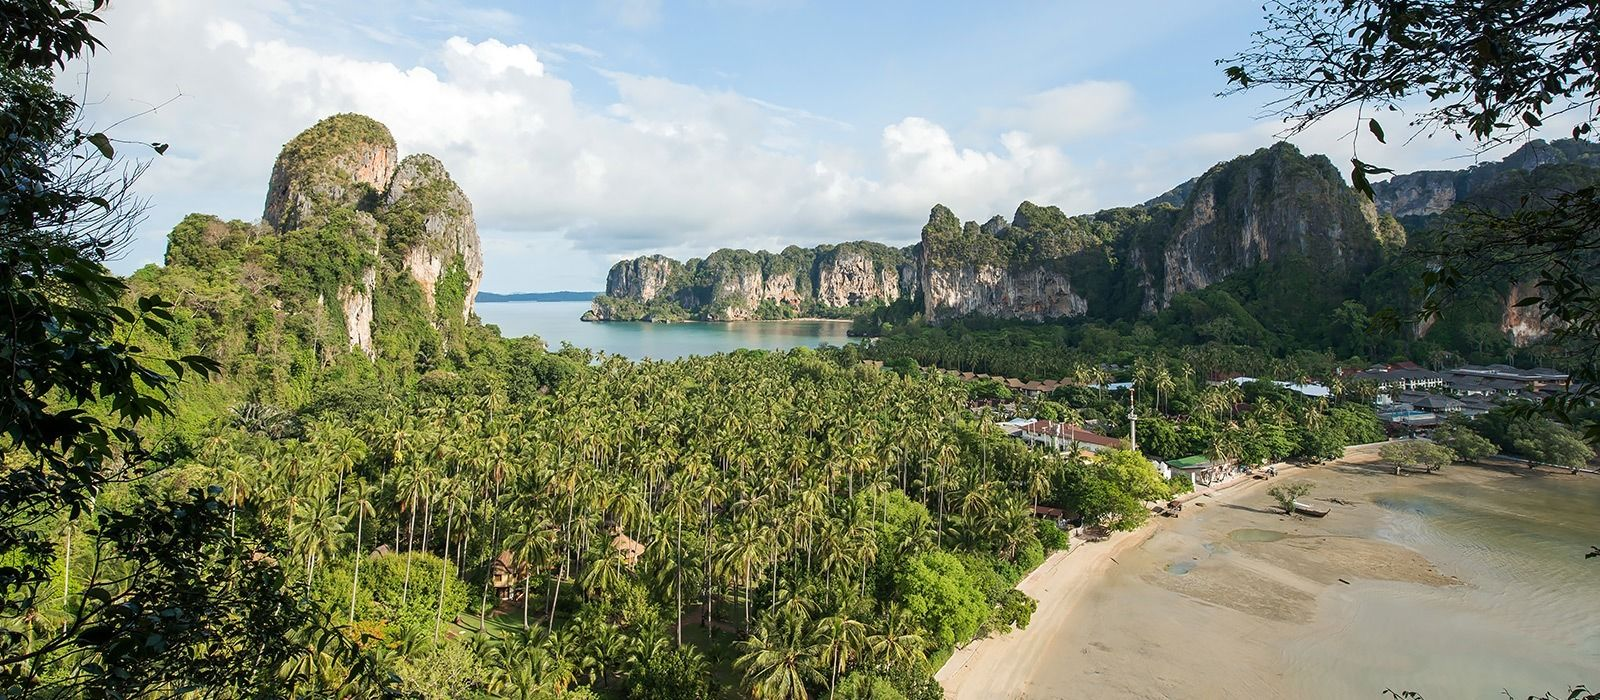 Destination Railay Beach Thailand